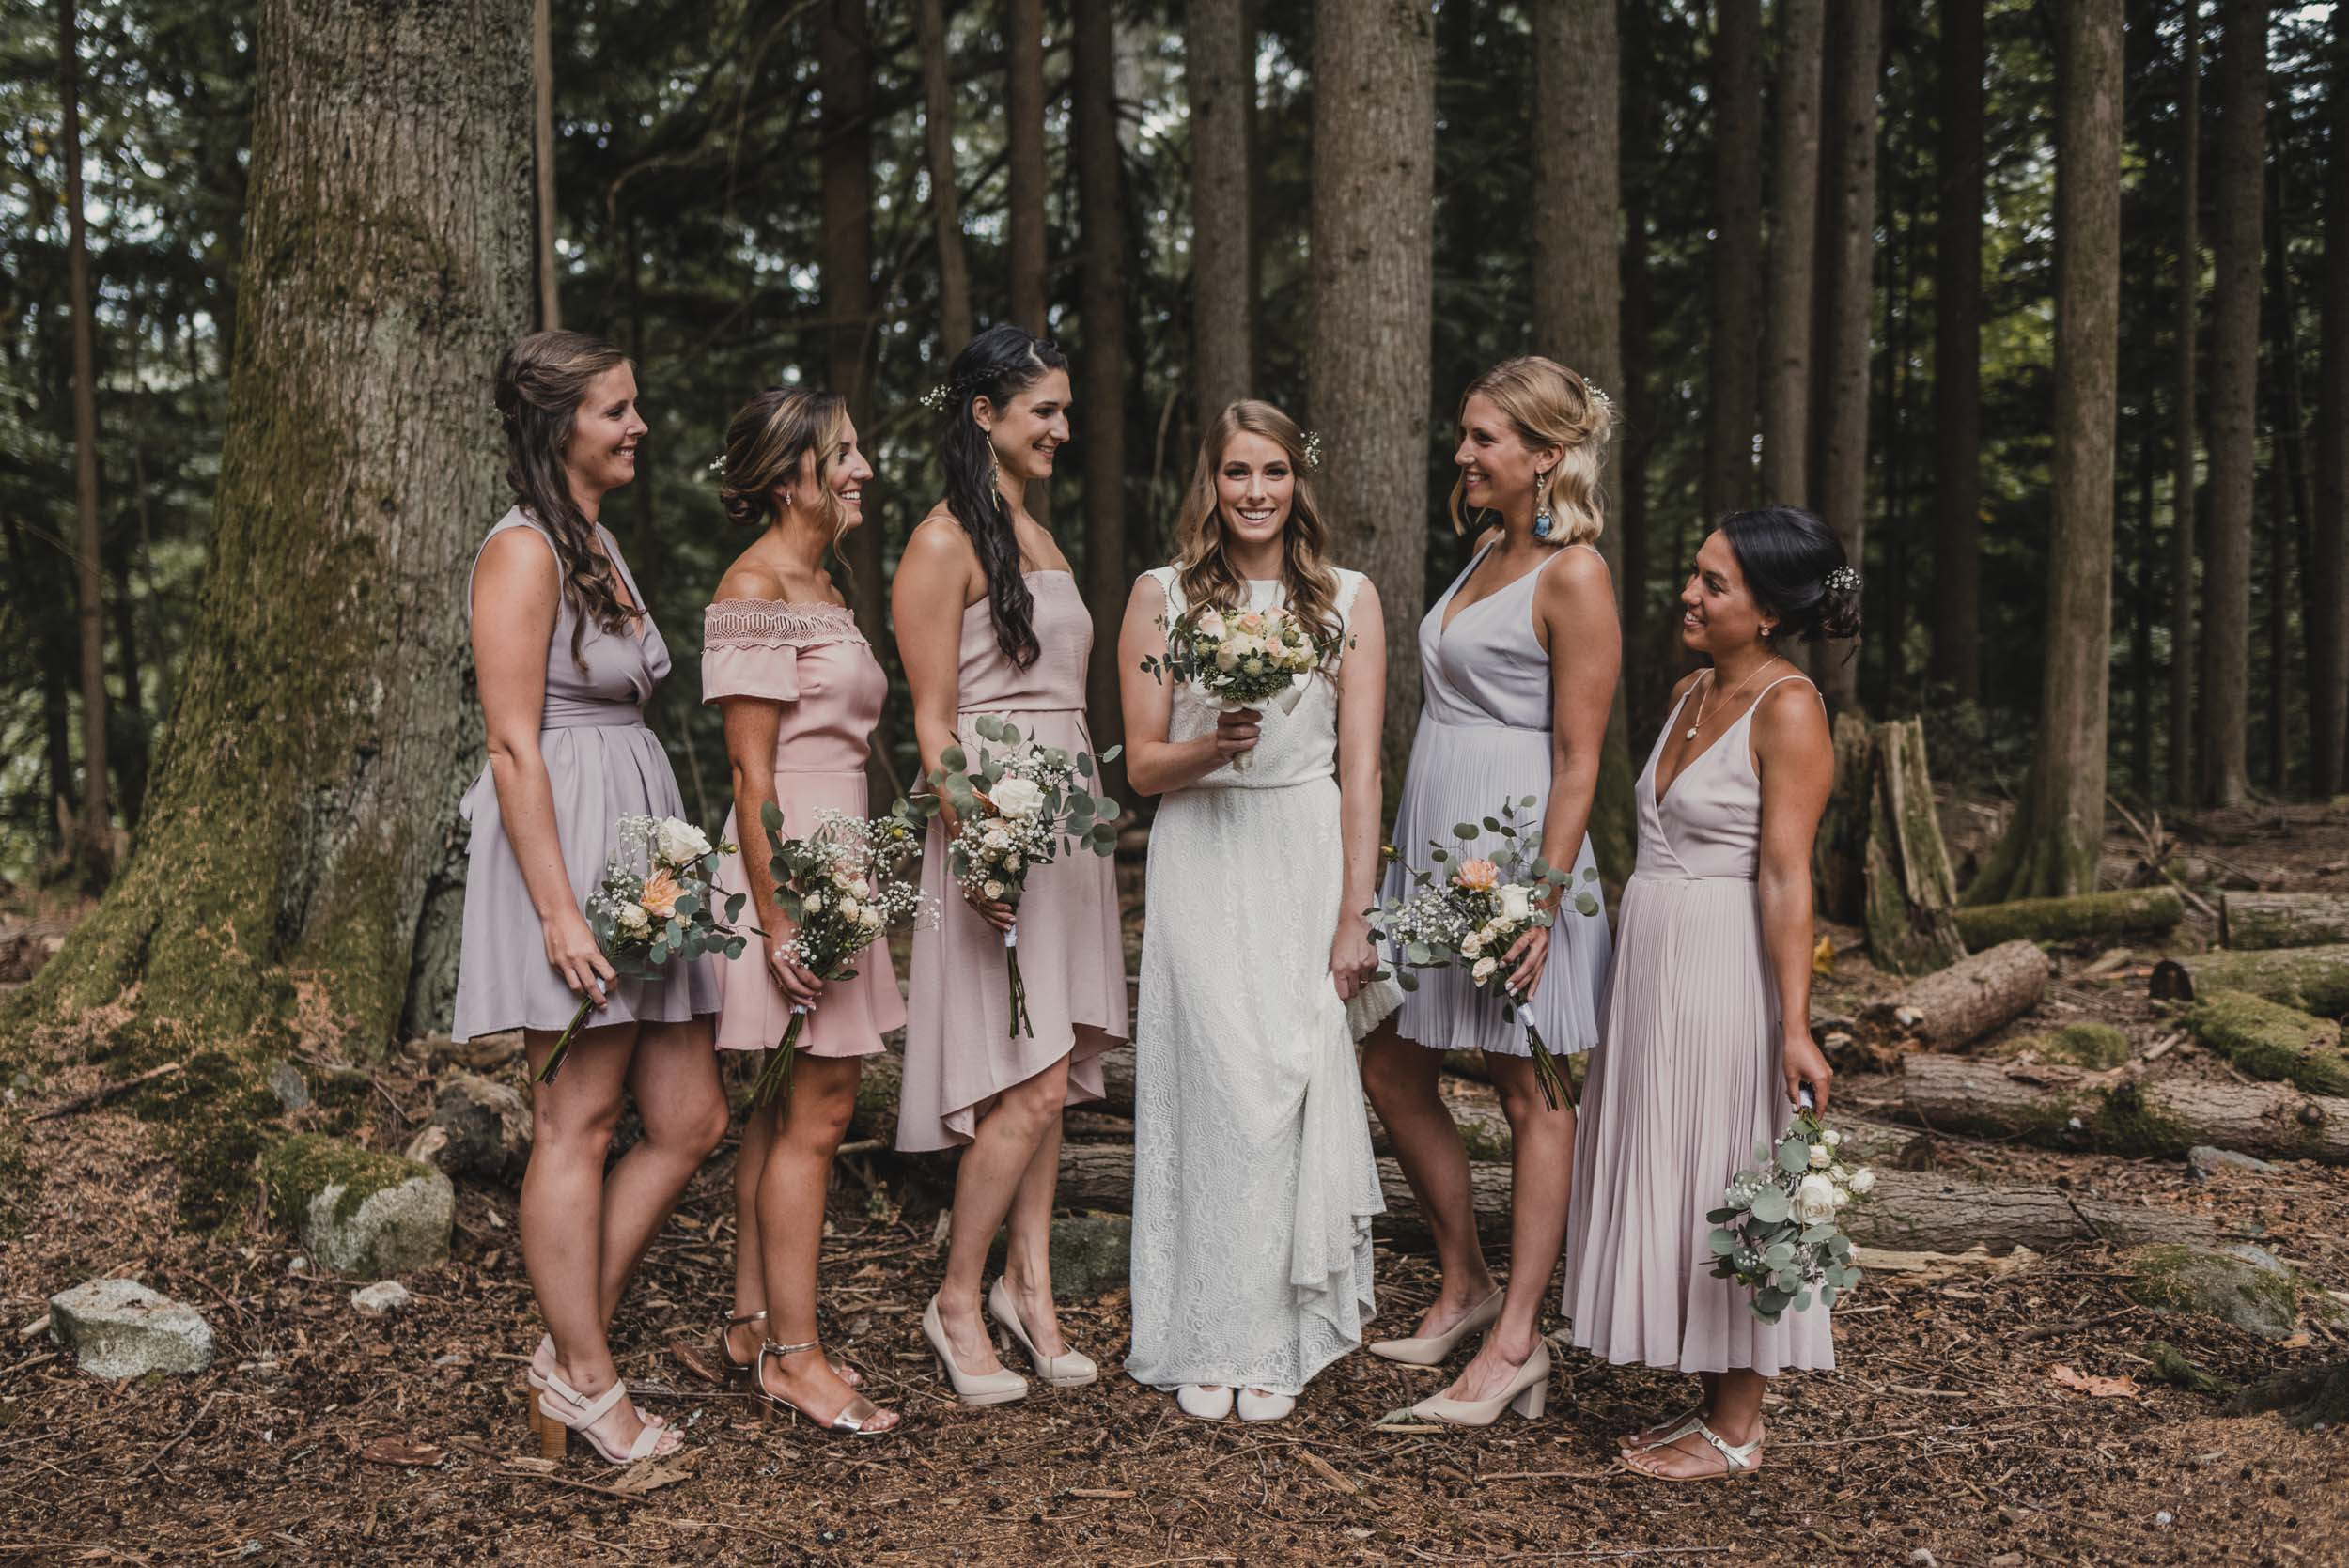 Bride and bridesmaids group photo in forest